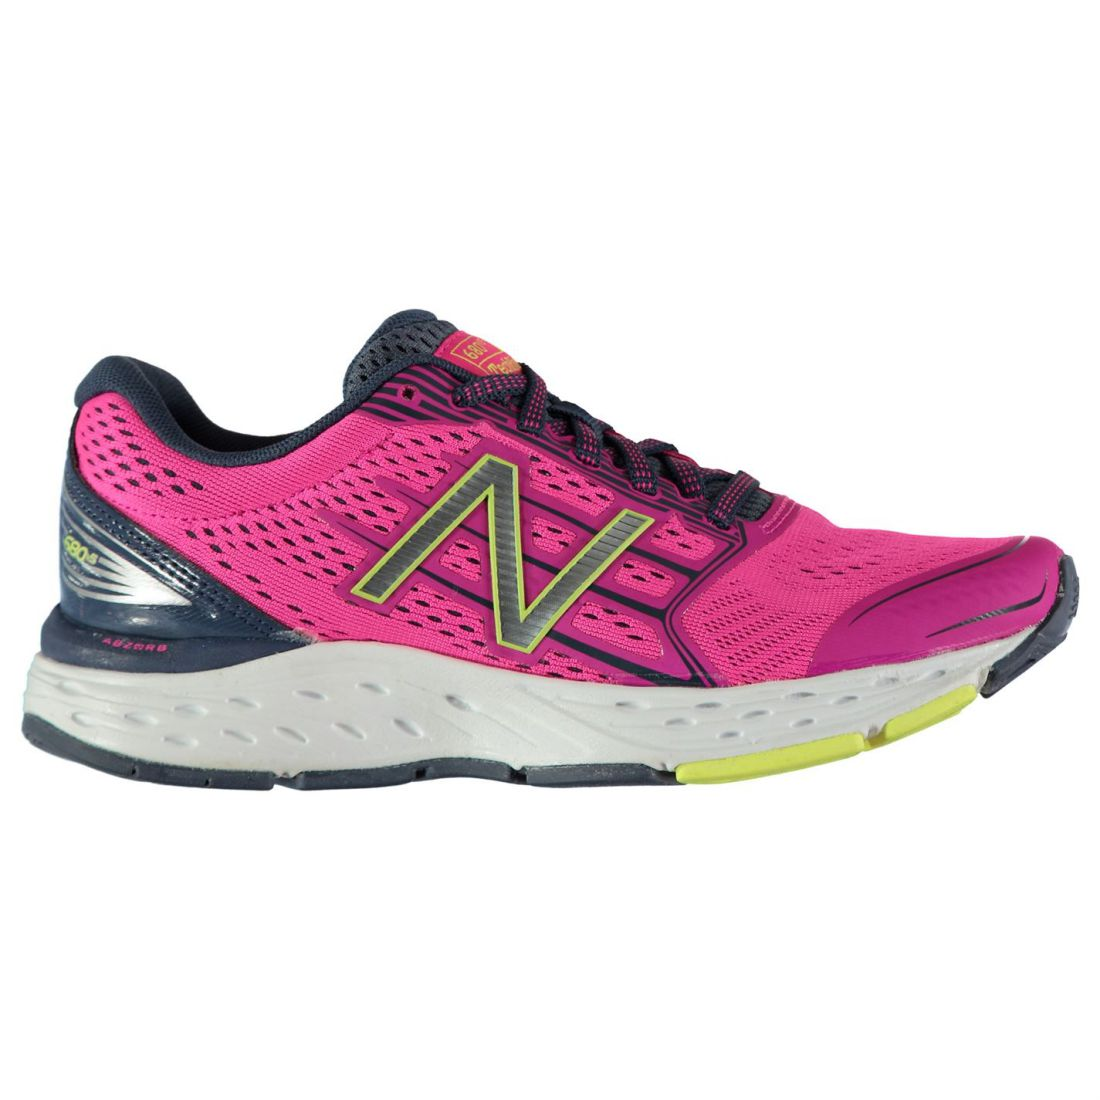 New Balance 680 v5 Running shoes Ladies Road  Laces Fastened Breathable Holes  high-quality merchandise and convenient, honest service